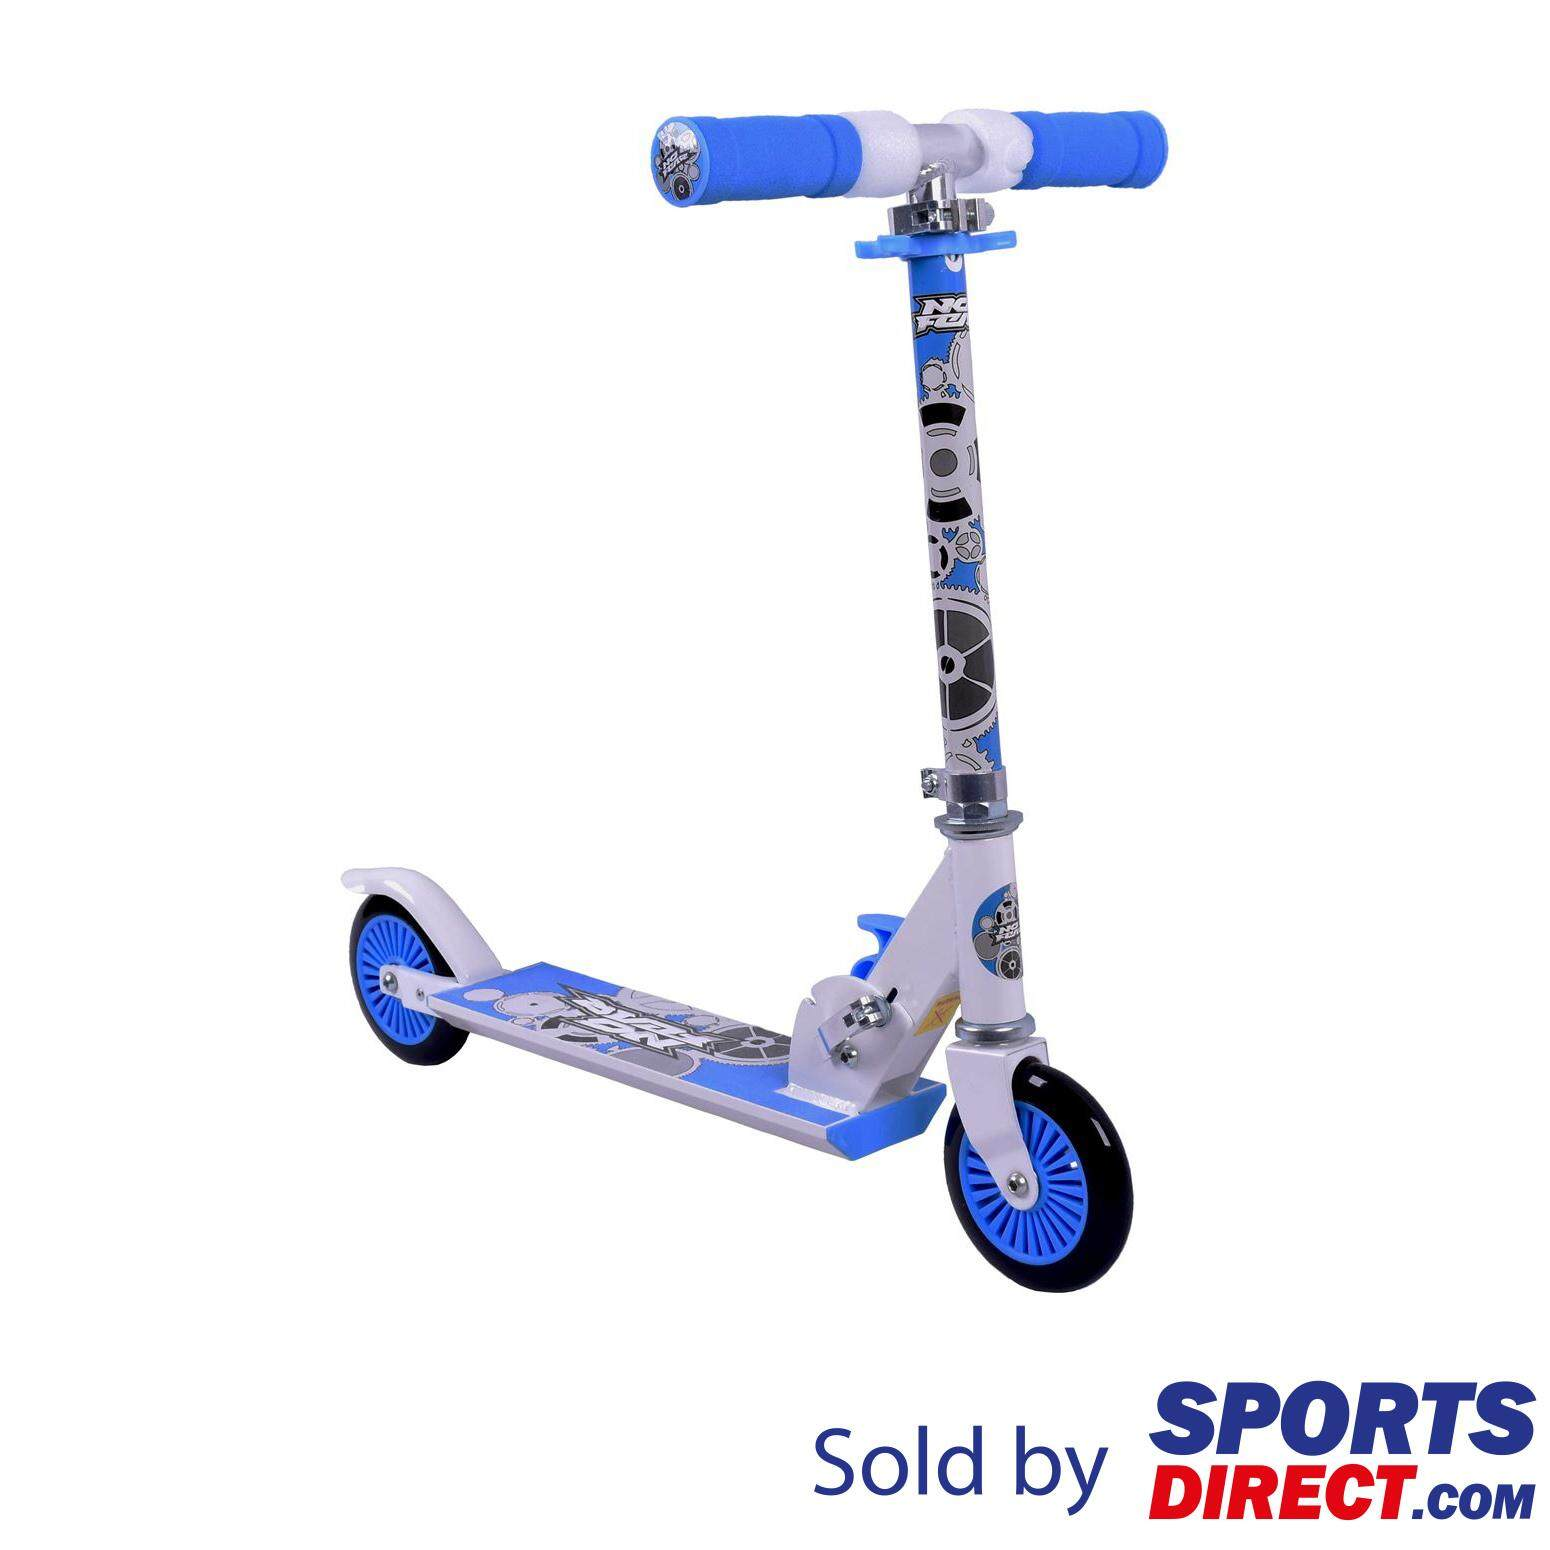 No Fear Kids Scooter (black/blue) By Sports Direct Mst Sdn Bhd.